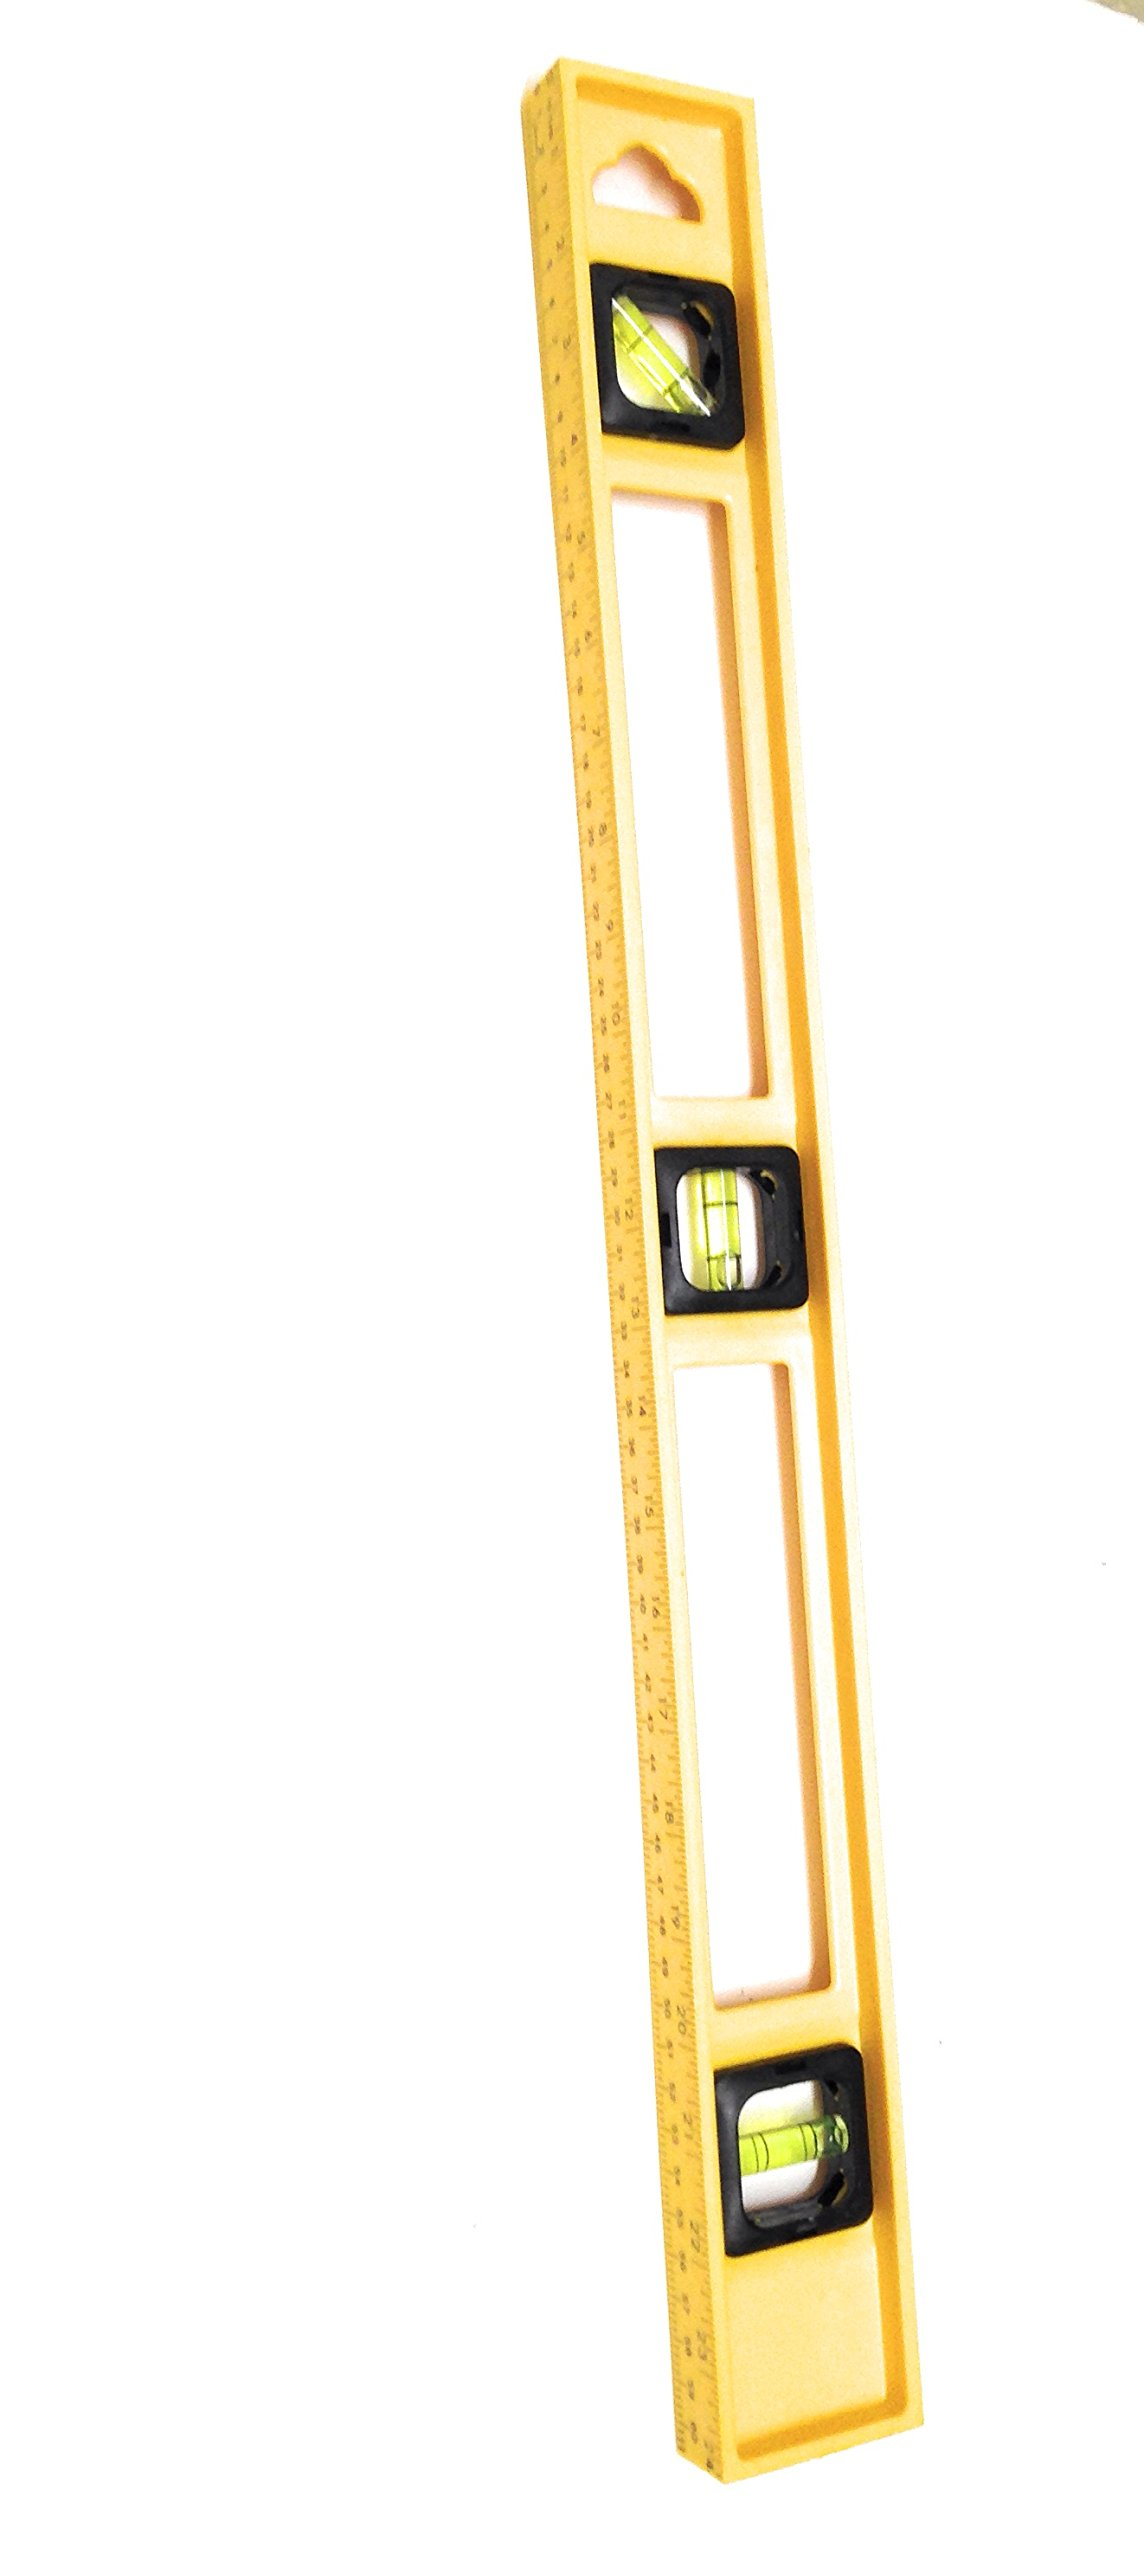 24 Inch and 6 Inch 3 Bubble Torpedo Level Pack Home or Jobsite Approved by Straight and Narrow (Image #1)